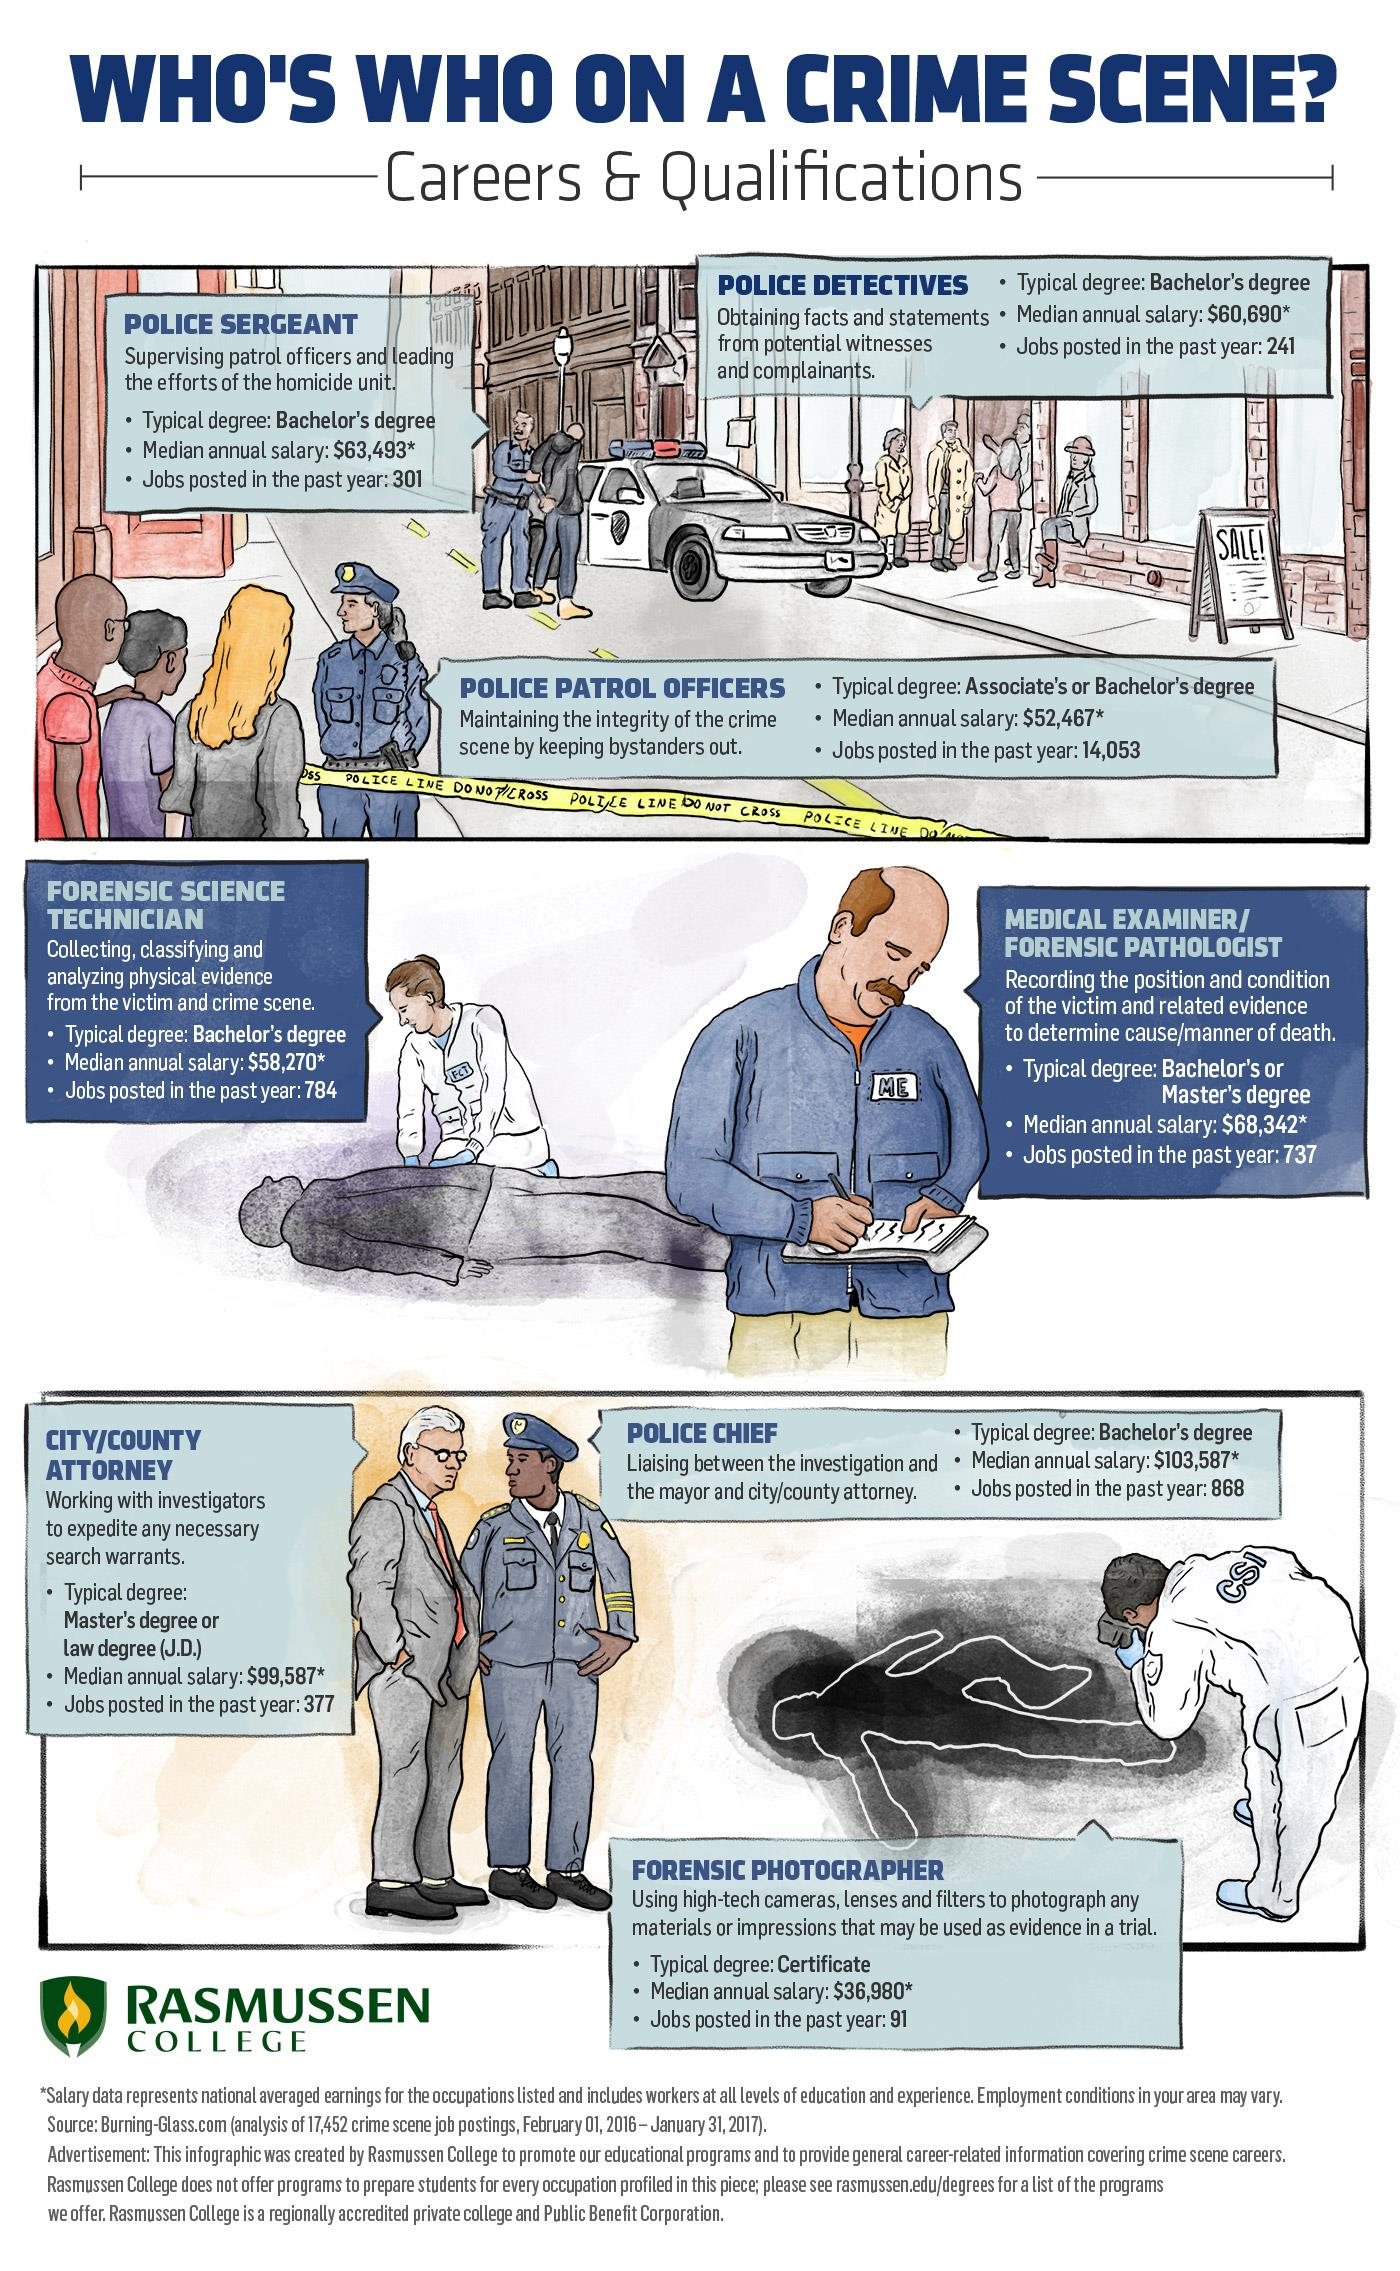 CSI Simplified: Your Visual Guide to Crime Scene Jobs [Infographic]